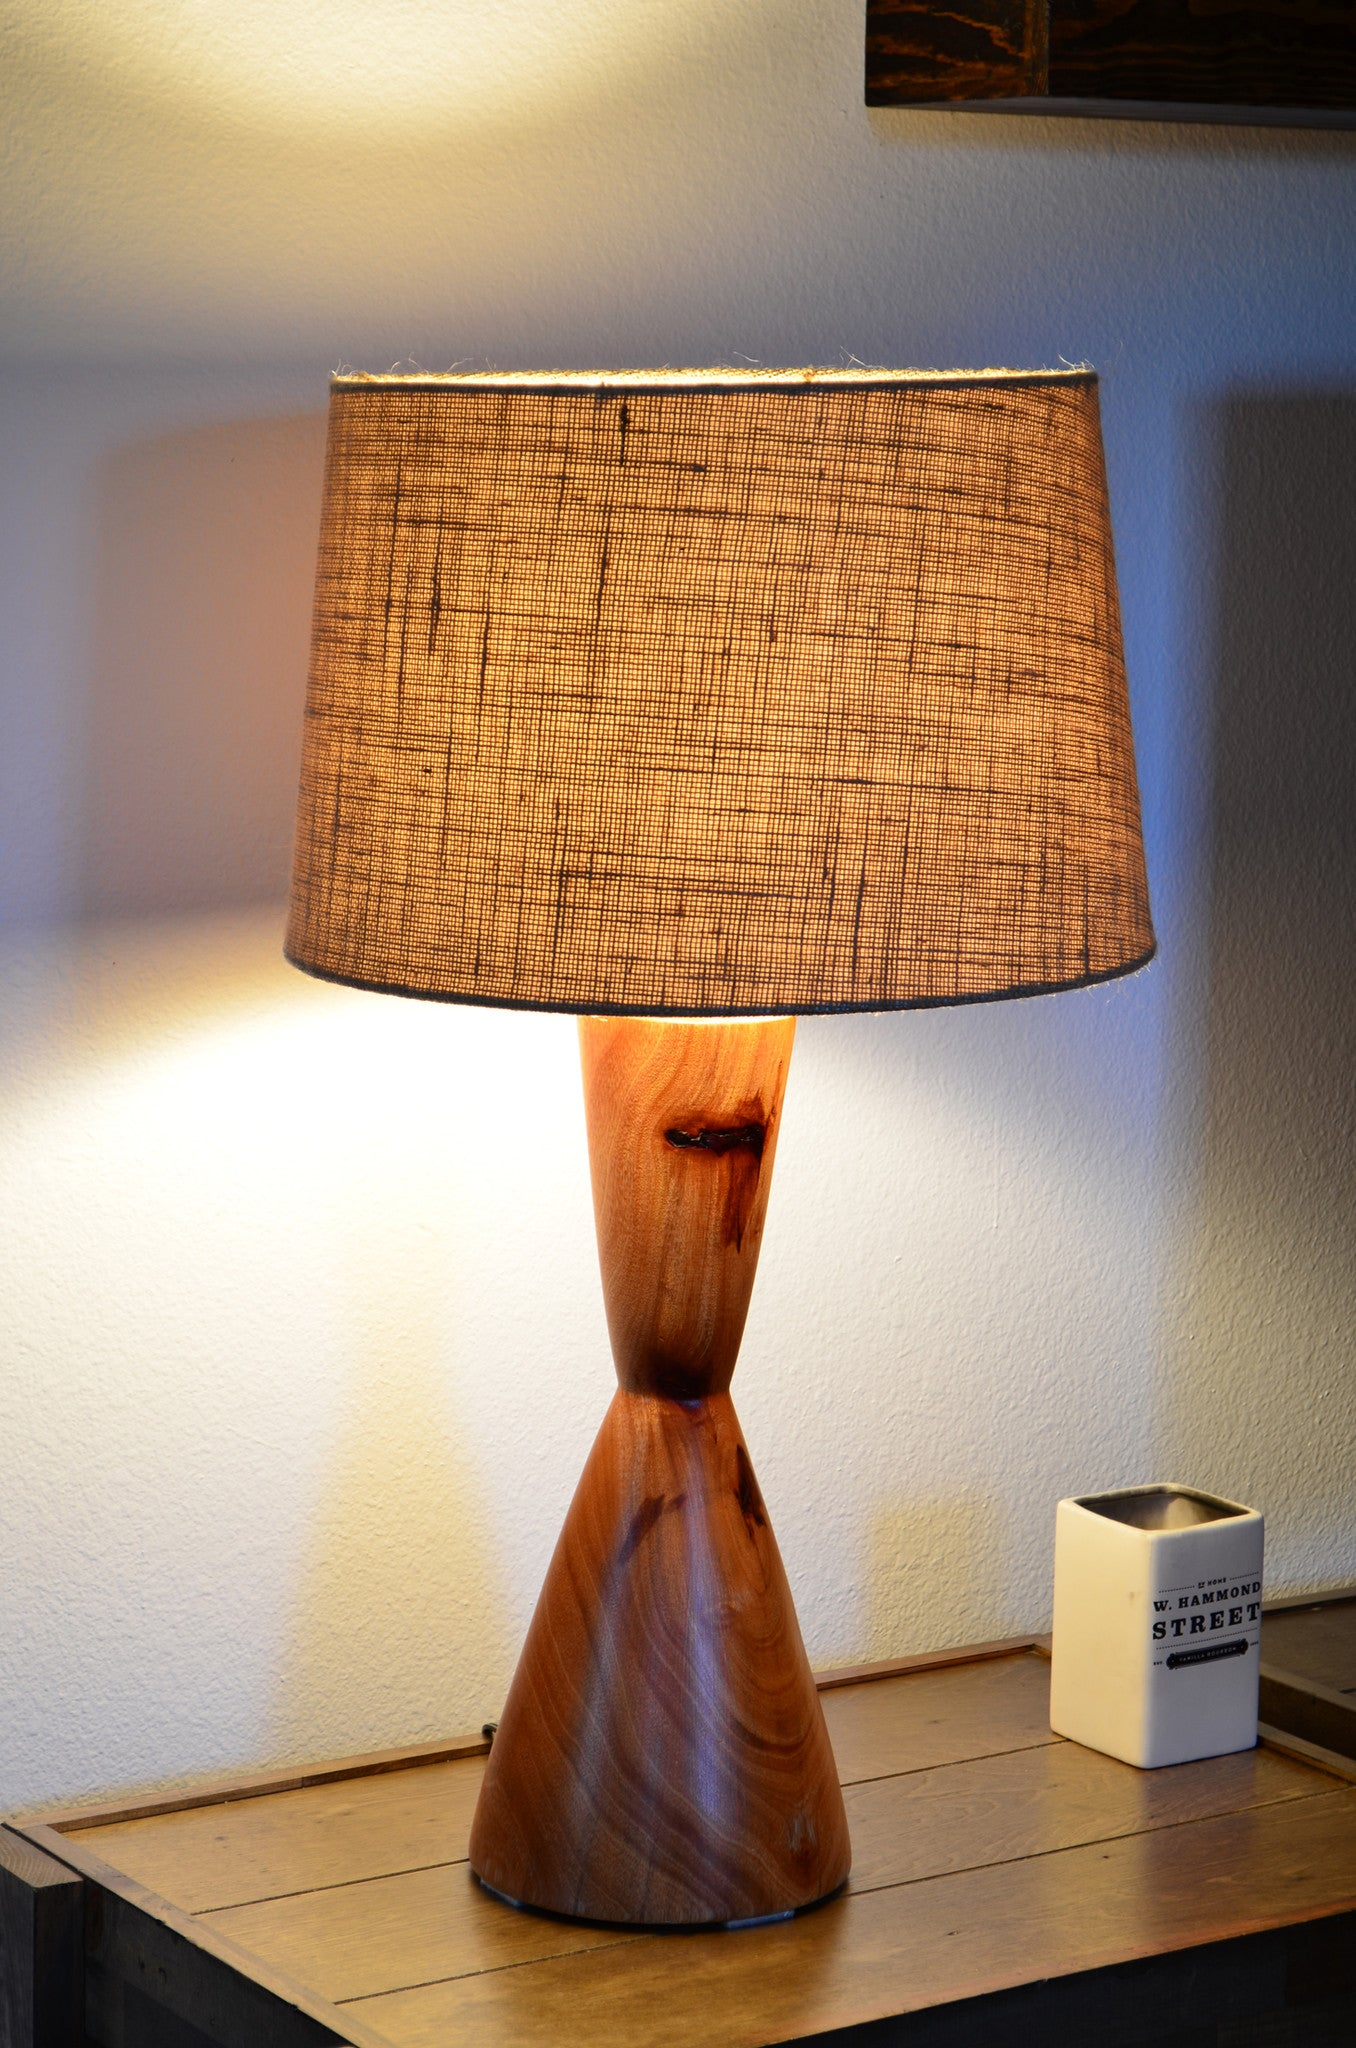 Wood turned mid century modern table lamp hourglass natural wood turned mid century modern table lamp hourglass natural geotapseo Choice Image